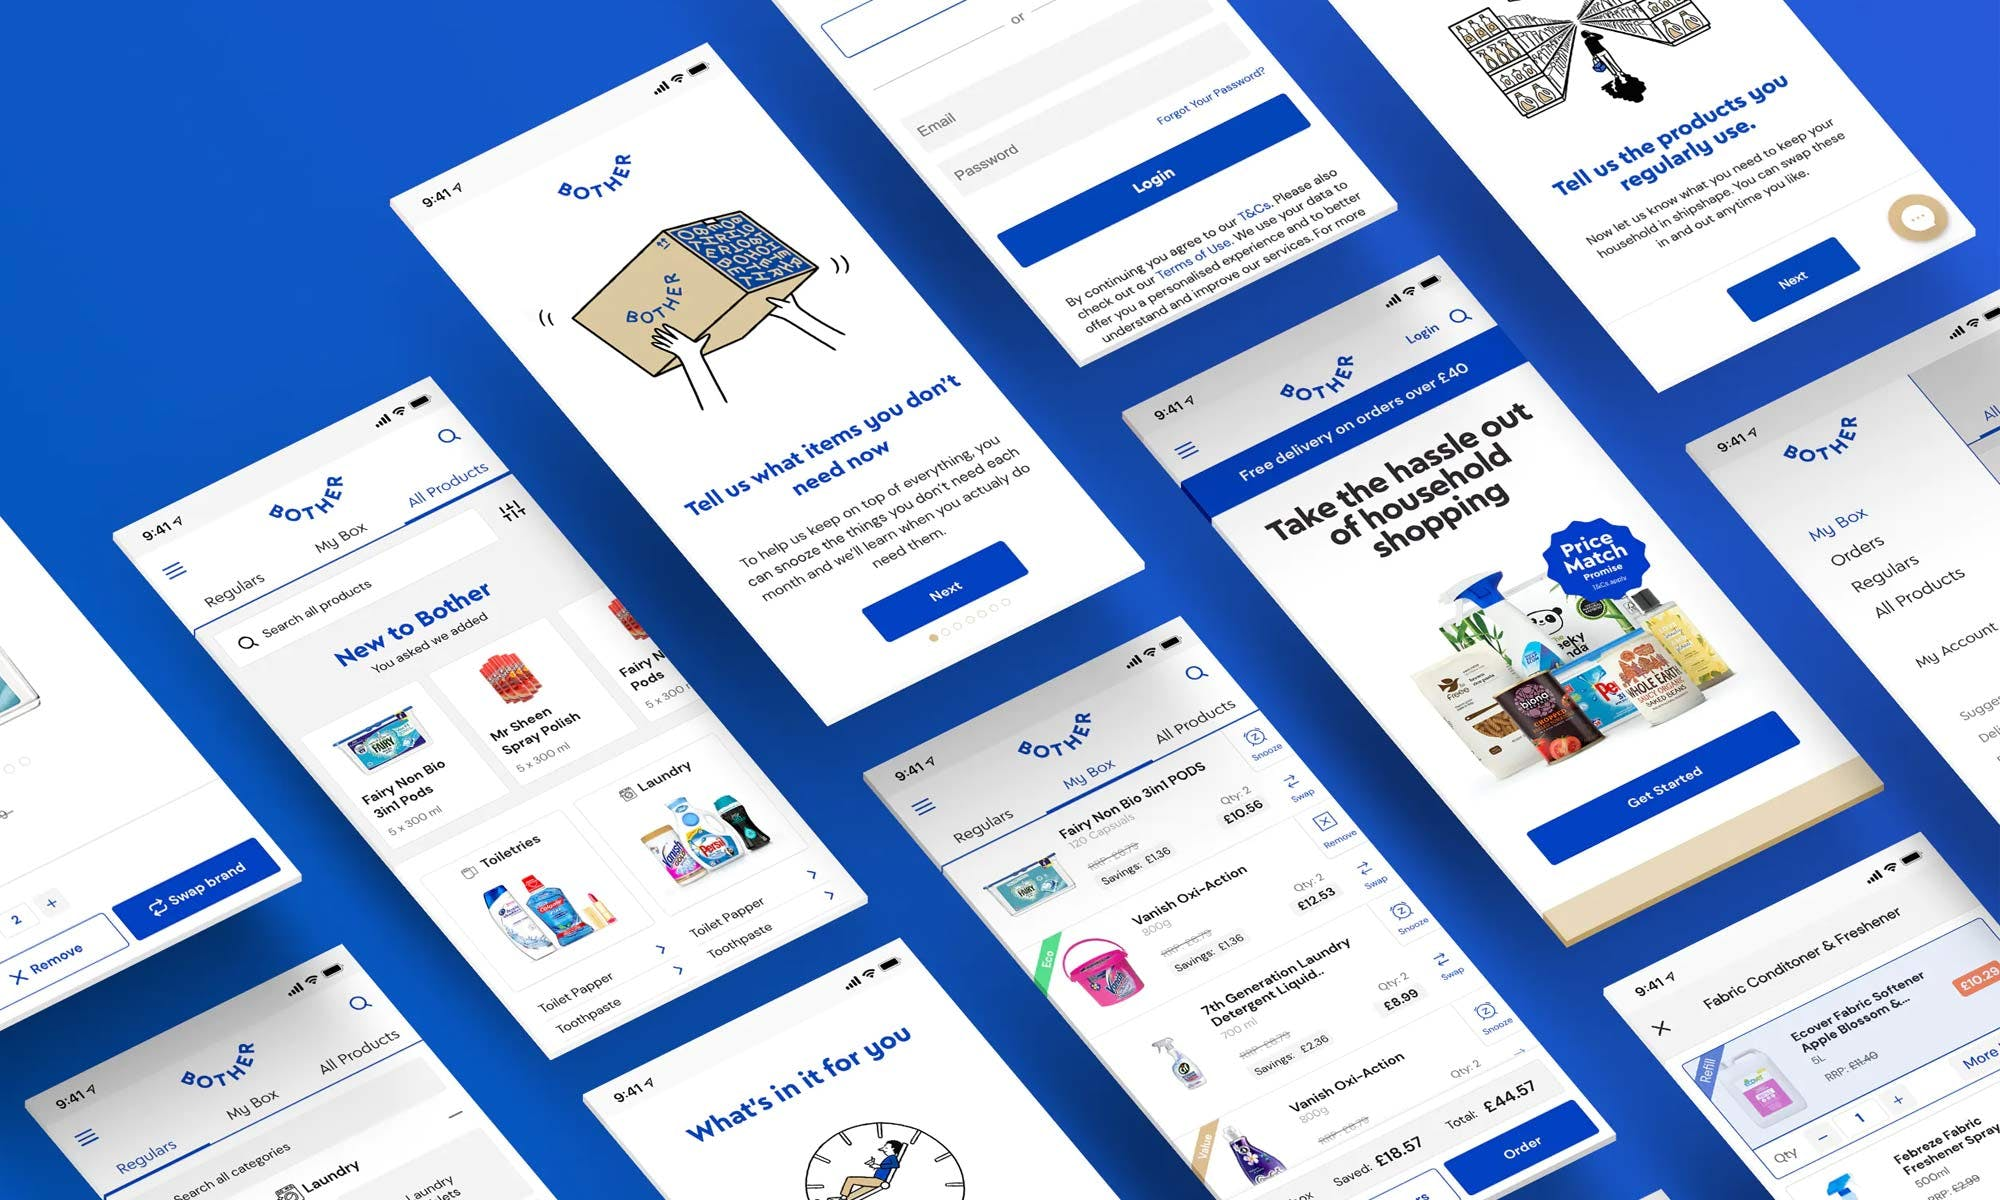 Chelsea Apps screenshots from the bother e-commerce app